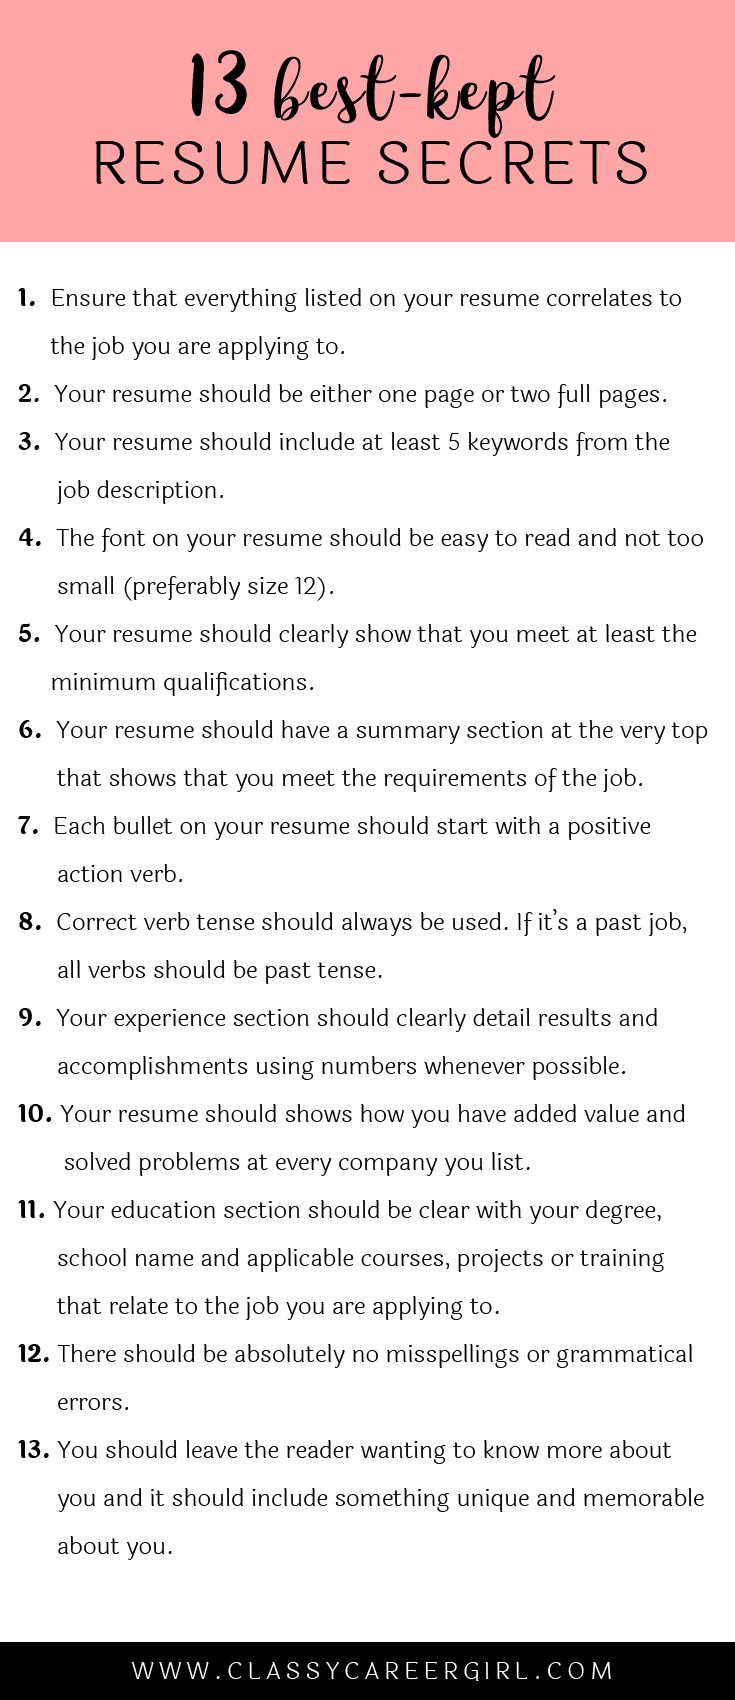 Opposenewapstandardsus  Unusual  Ideas About Resume On Pinterest  Cv Format Resume Cv And  With Goodlooking Some Hiring Managers Will Toss Your Resume Out If You Dont Know These  With Nice Registered Nurse Resumes Also Do You Put High School On Resume In Addition Resume For College Internship And Military Experience Resume As Well As Work Study Resume Additionally Teamwork Resume From Pinterestcom With Opposenewapstandardsus  Goodlooking  Ideas About Resume On Pinterest  Cv Format Resume Cv And  With Nice Some Hiring Managers Will Toss Your Resume Out If You Dont Know These  And Unusual Registered Nurse Resumes Also Do You Put High School On Resume In Addition Resume For College Internship From Pinterestcom